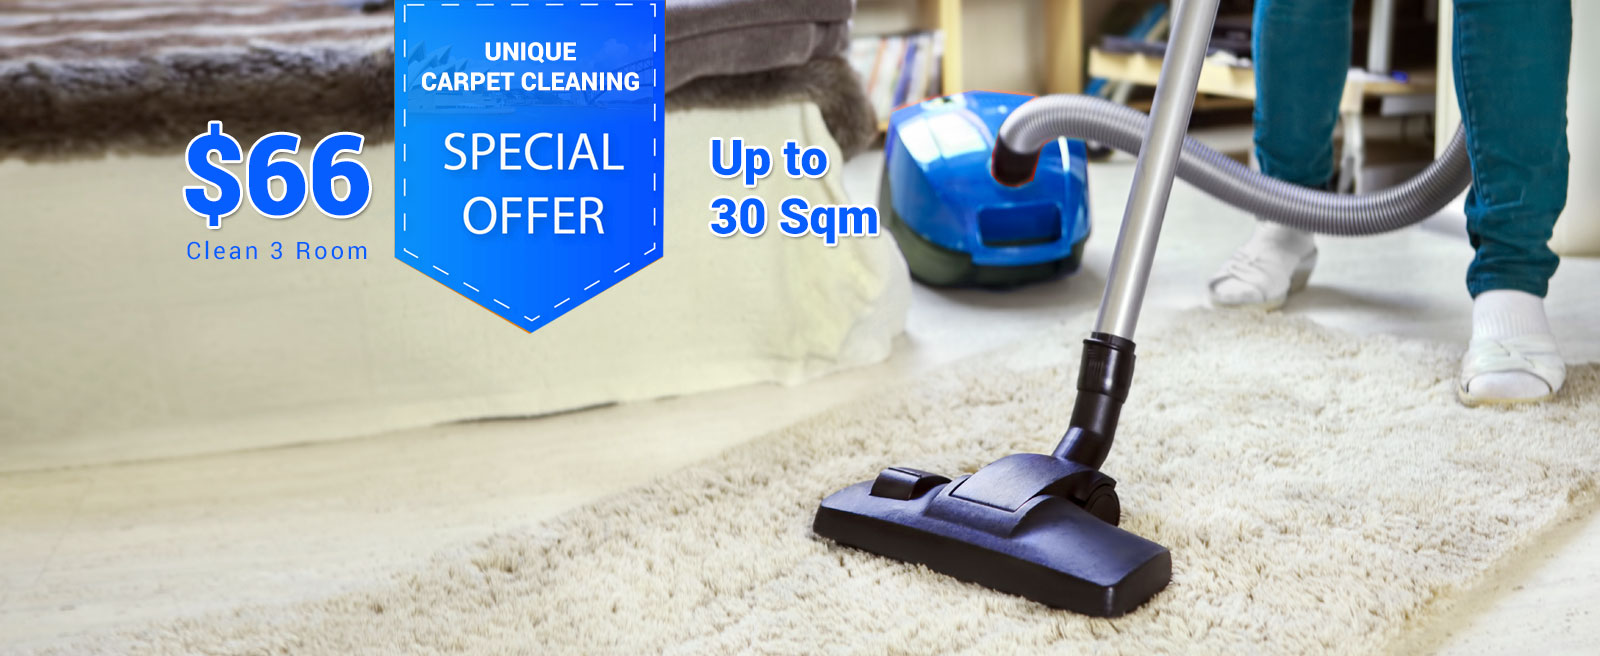 Cheap Carpet Cleaning Melbourne Best Carpet Cleaners